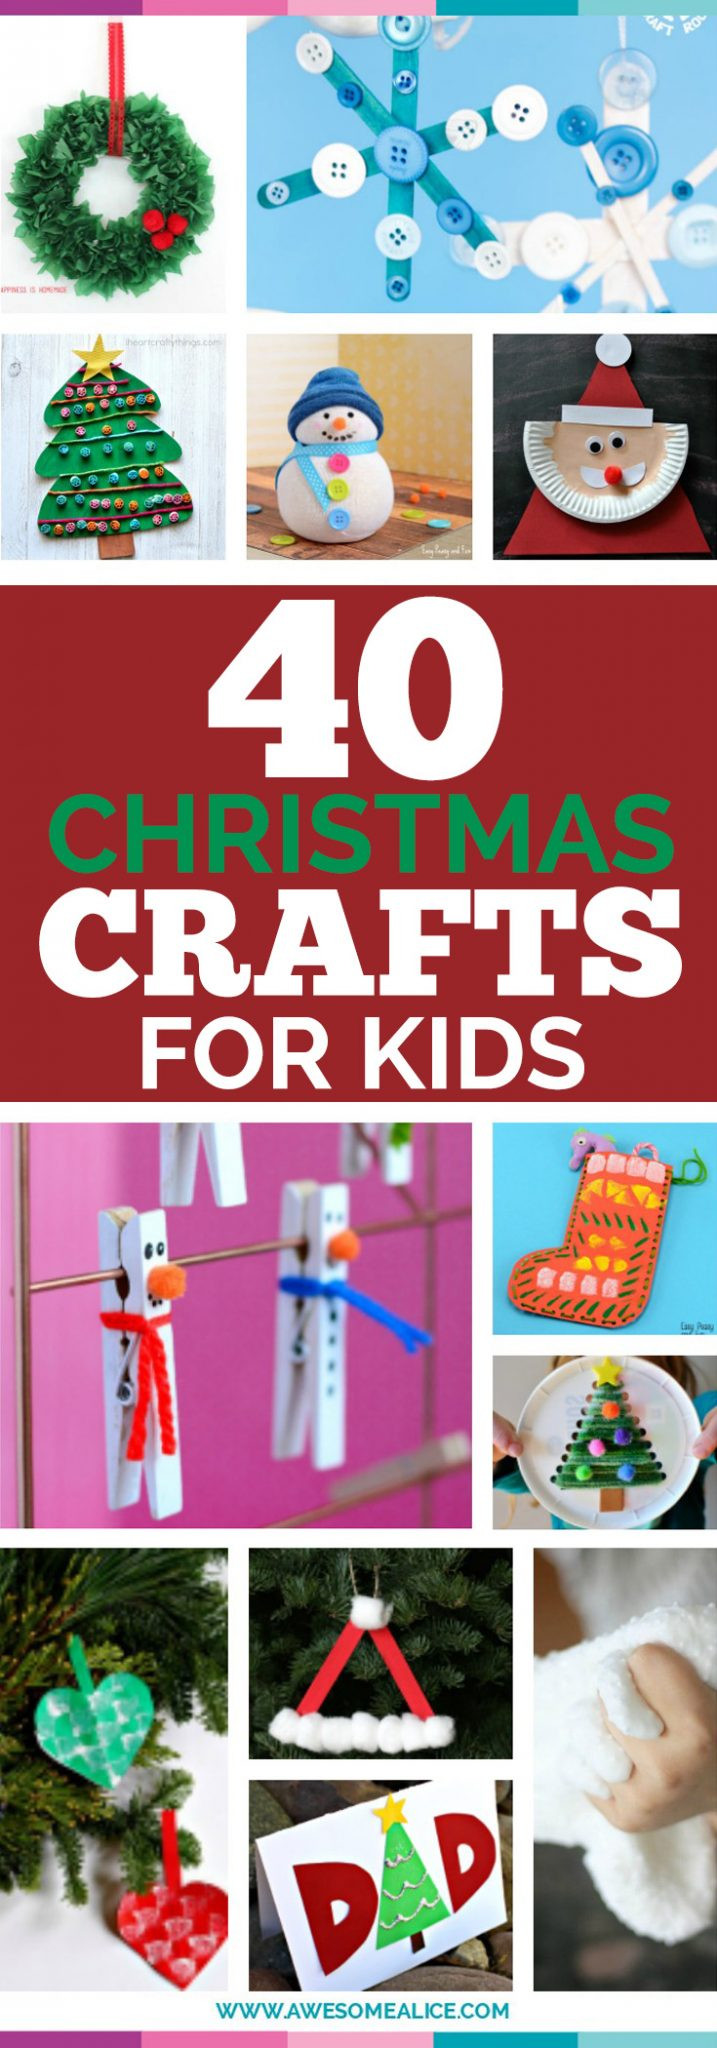 Best ideas about Best Kids Craft . Save or Pin Top 40 Easy And Fun Christmas Crafts For Kids to Make Now.